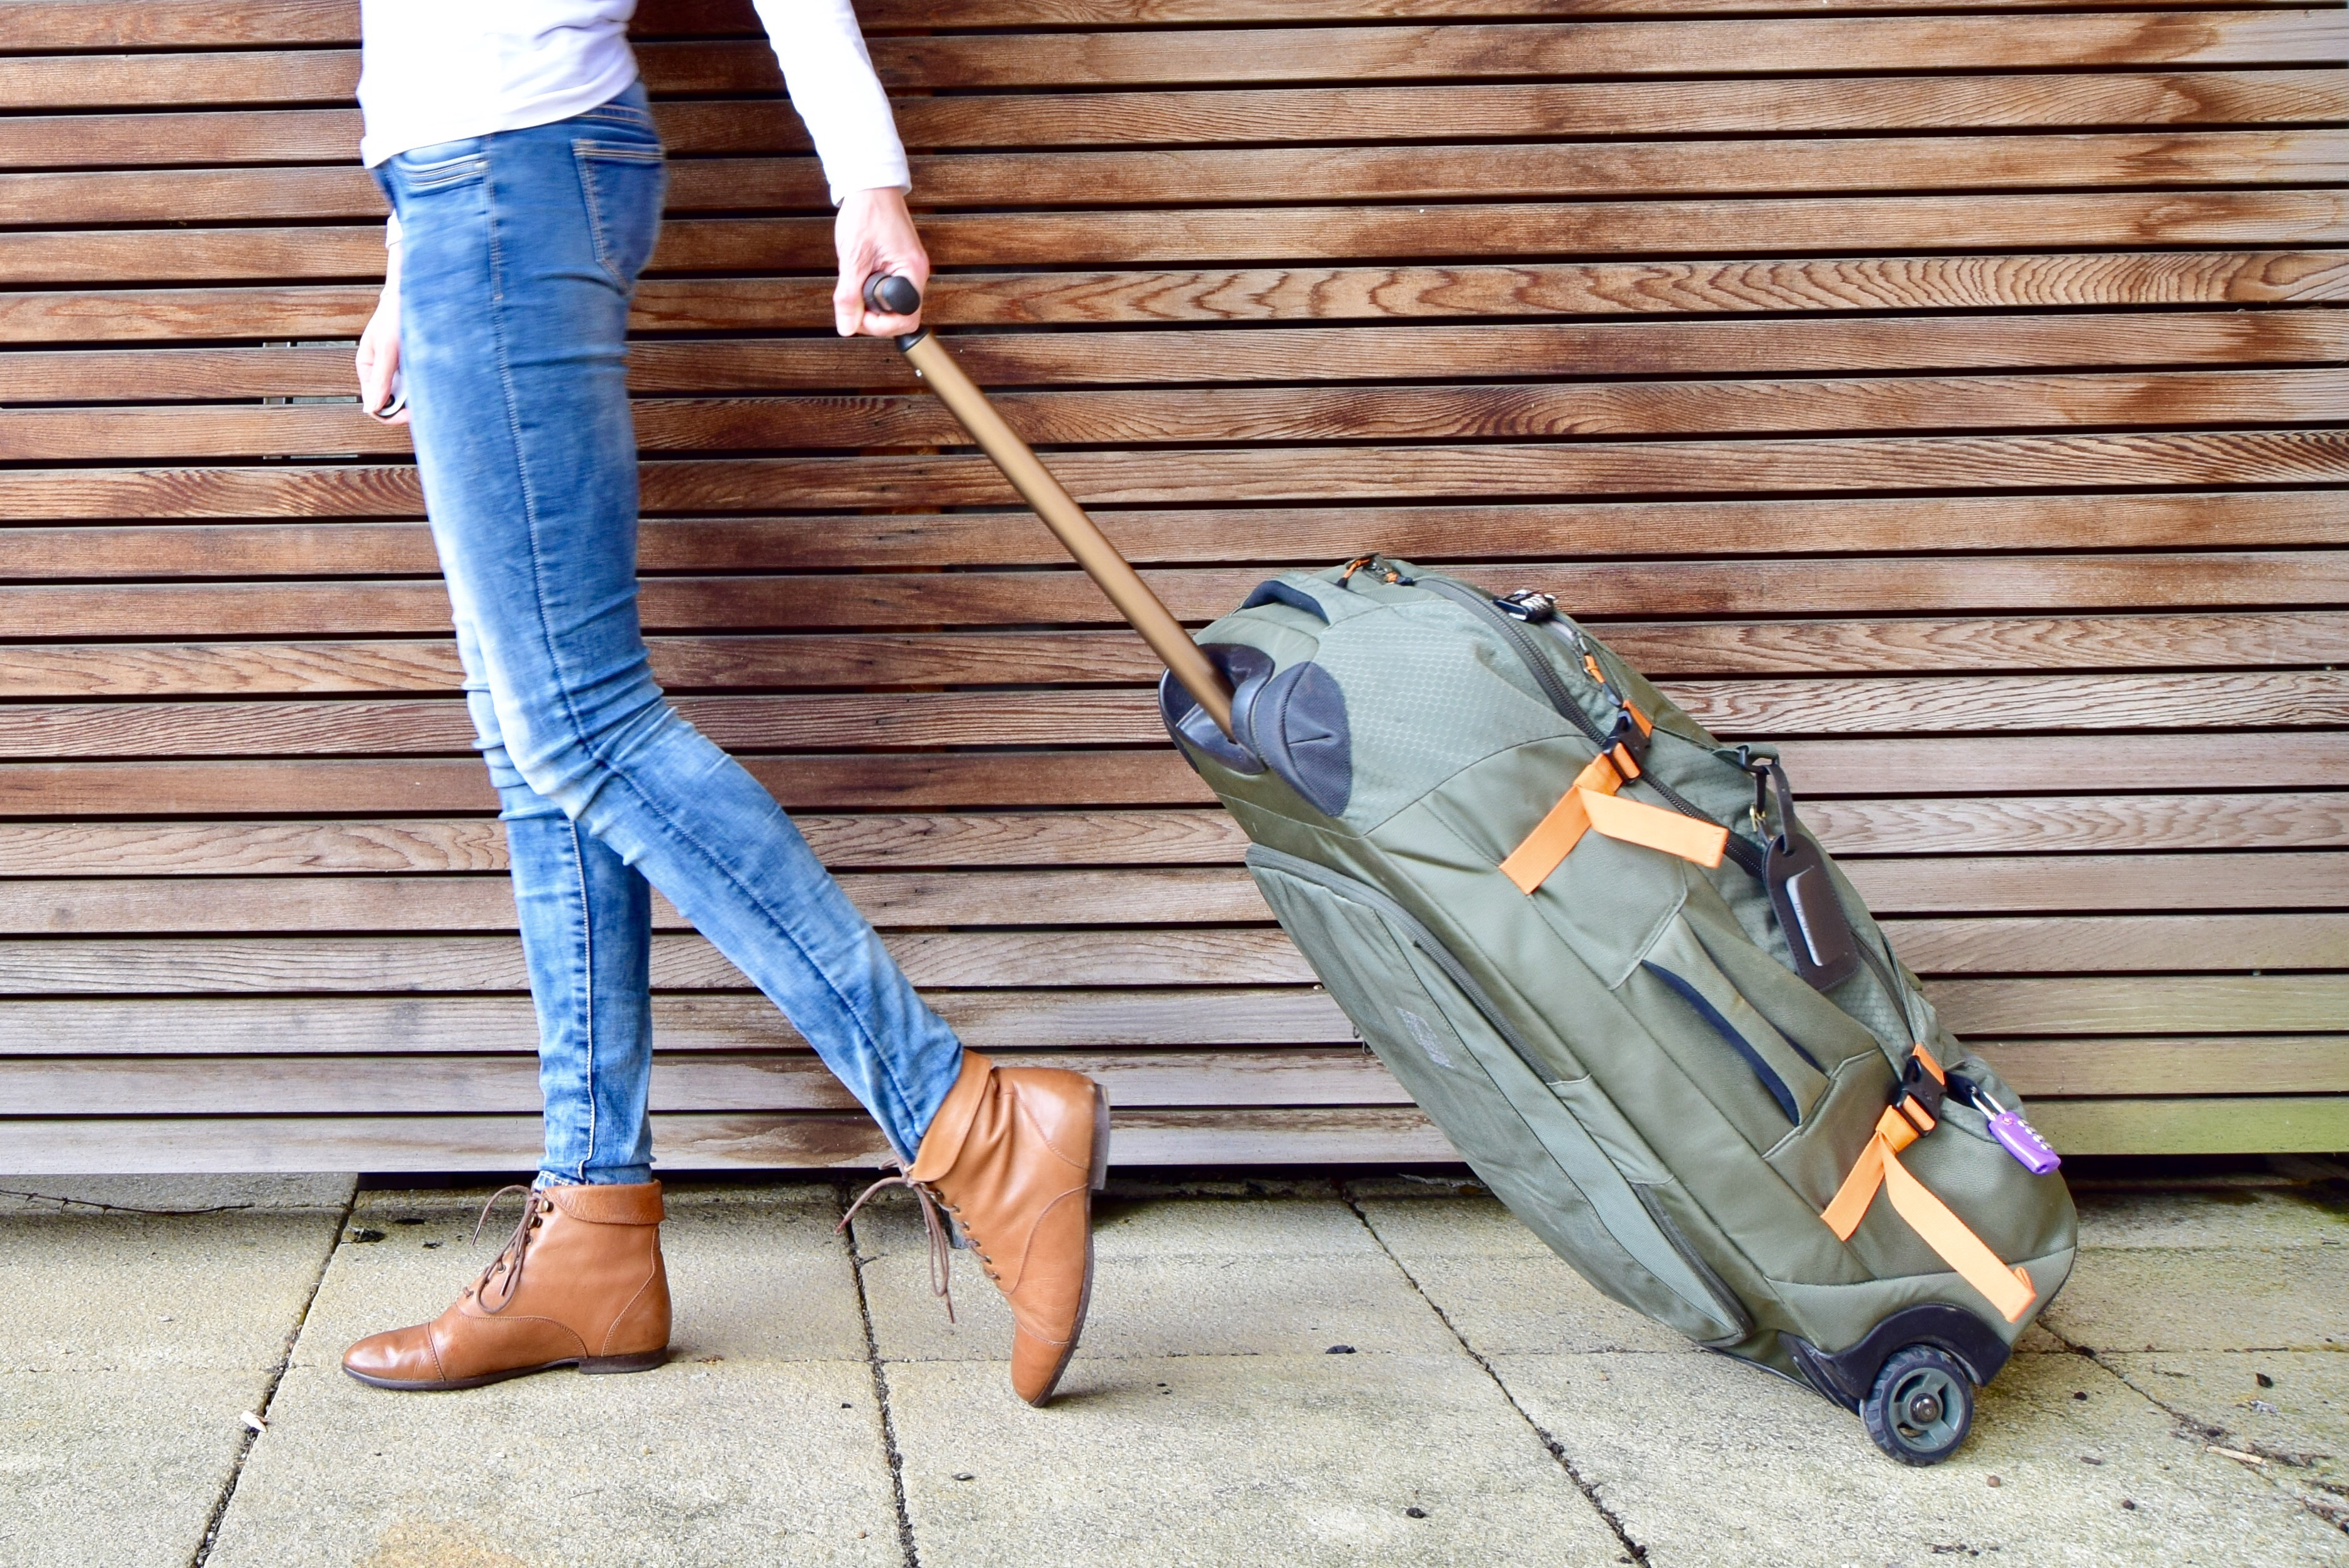 Do You Need A Backpack Or Suitcase For Travelling Neither Or Rather Both The Chickadee